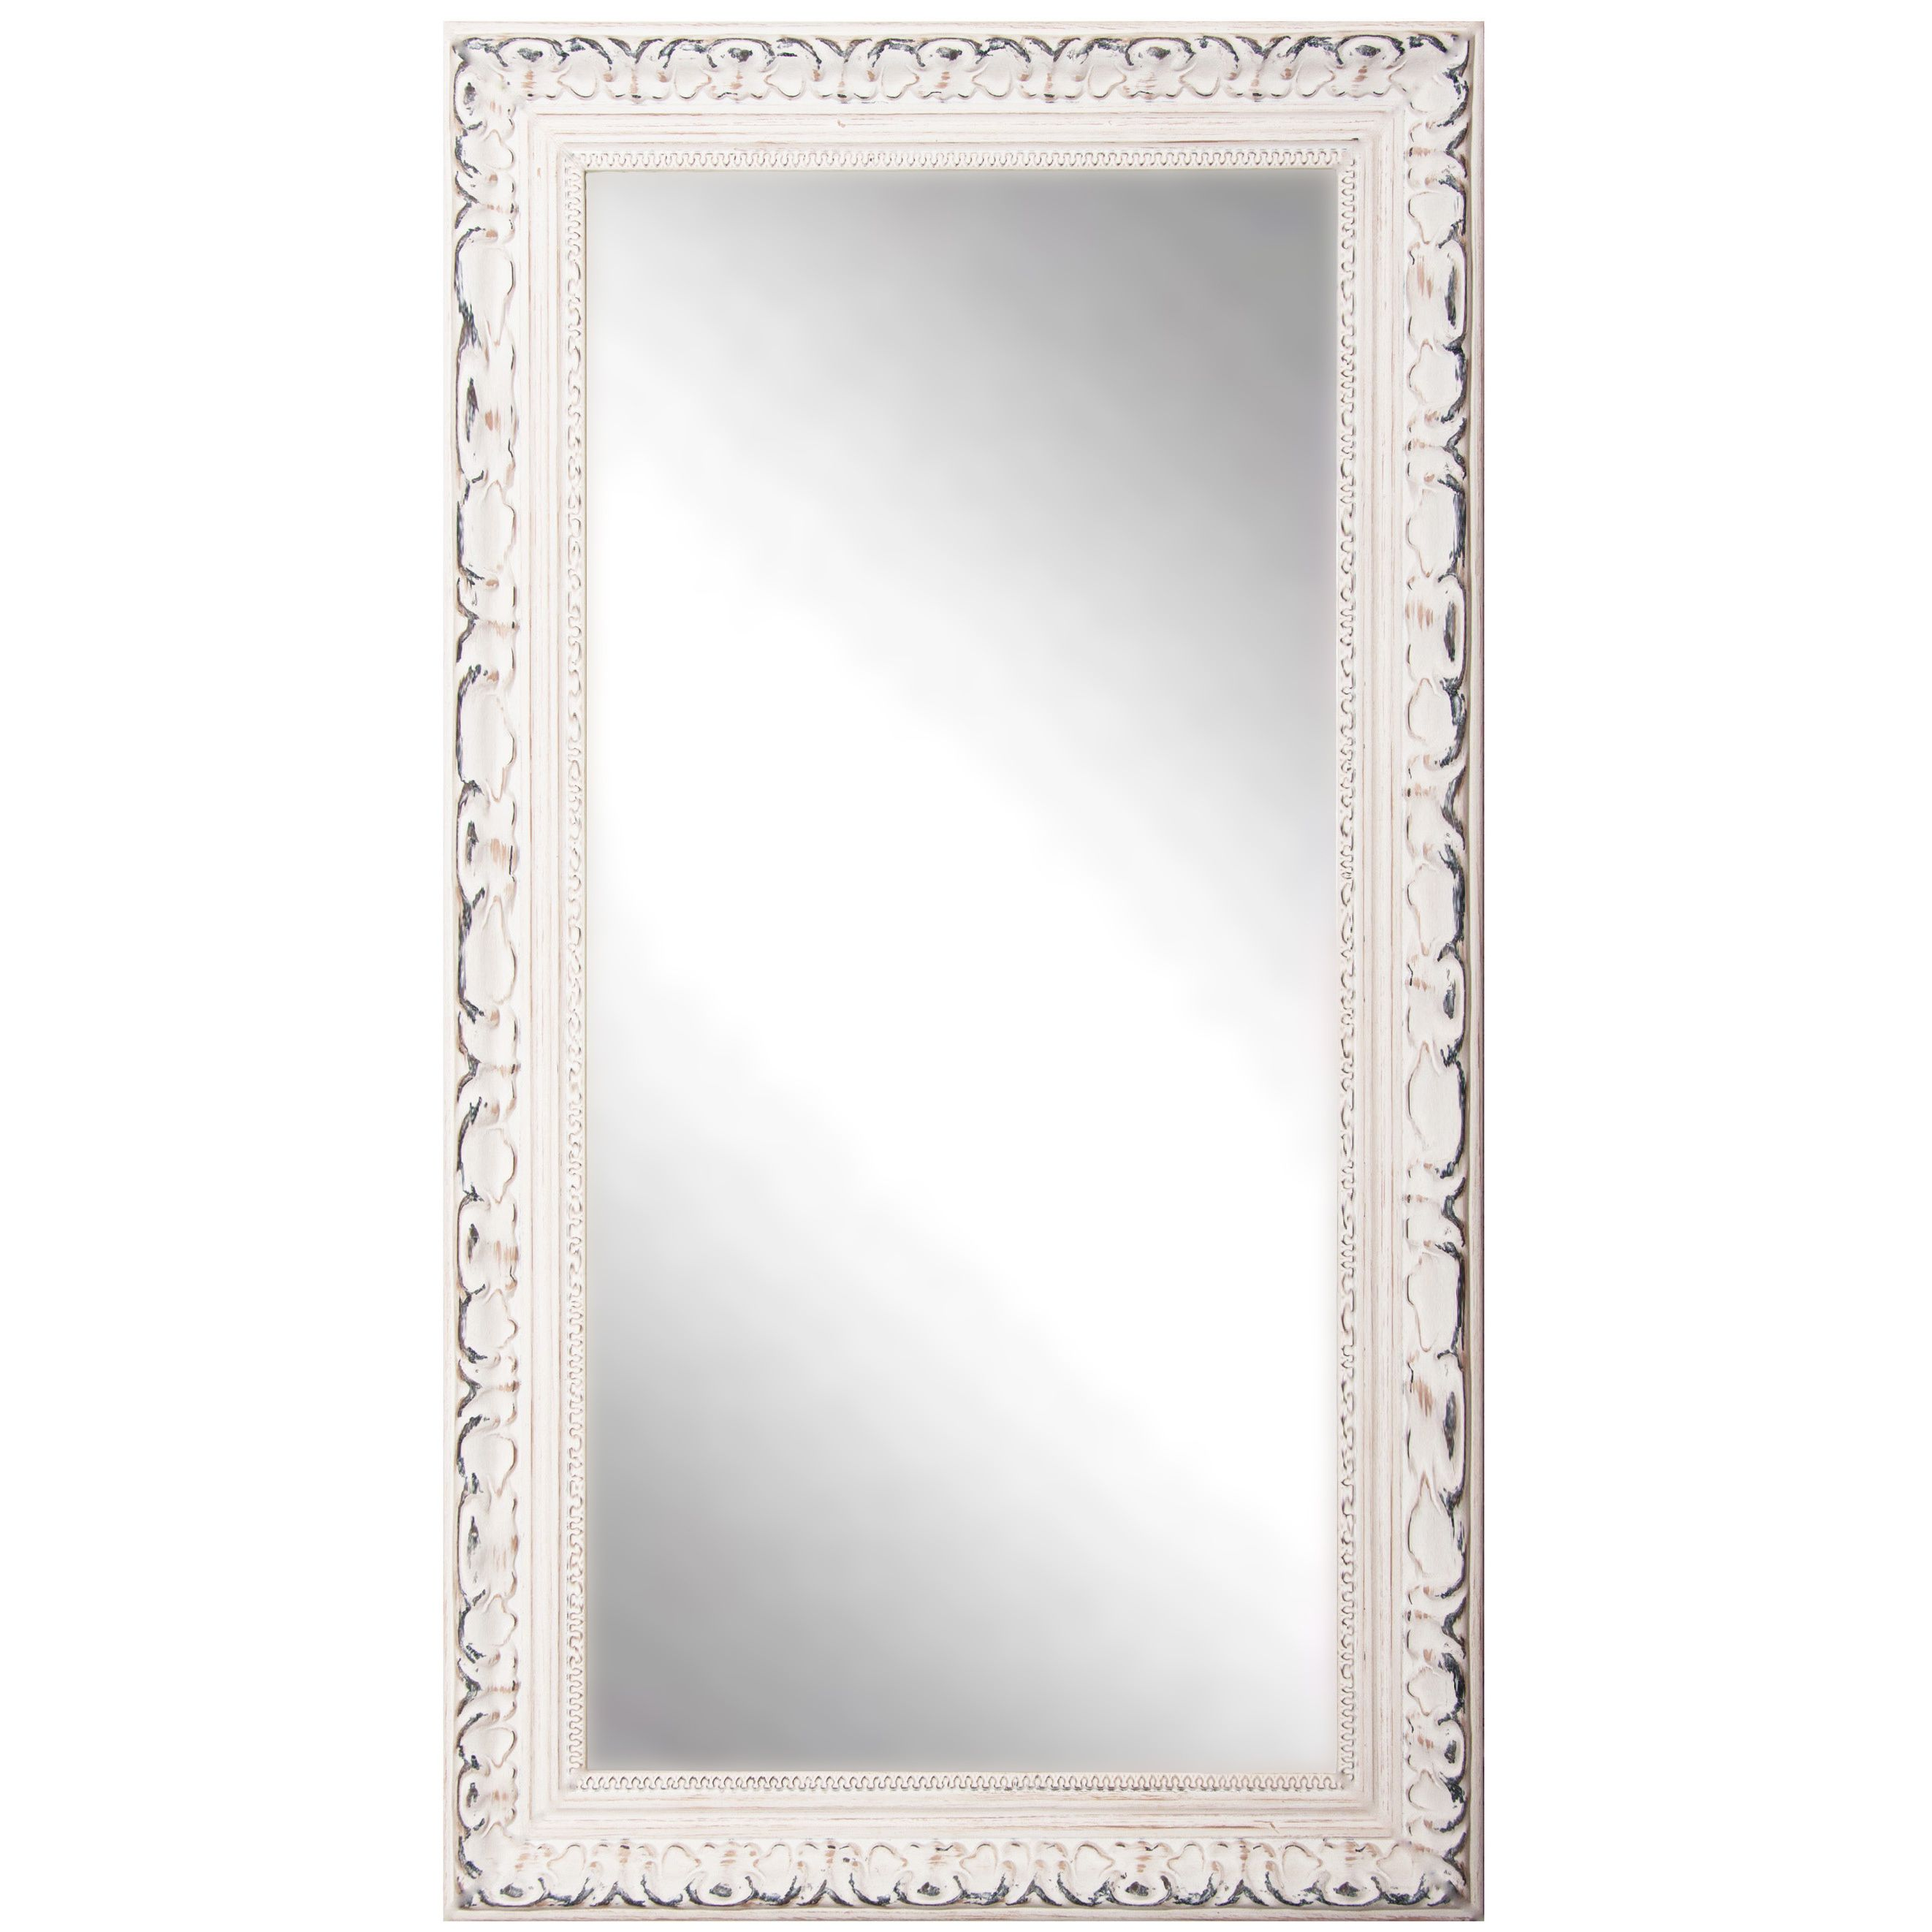 Overstock Com Online Shopping Bedding Furniture Electronics Jewelry Clothing More Victorian Wall Mirrors Mirror Mirror Wall [ 2644 x 2644 Pixel ]